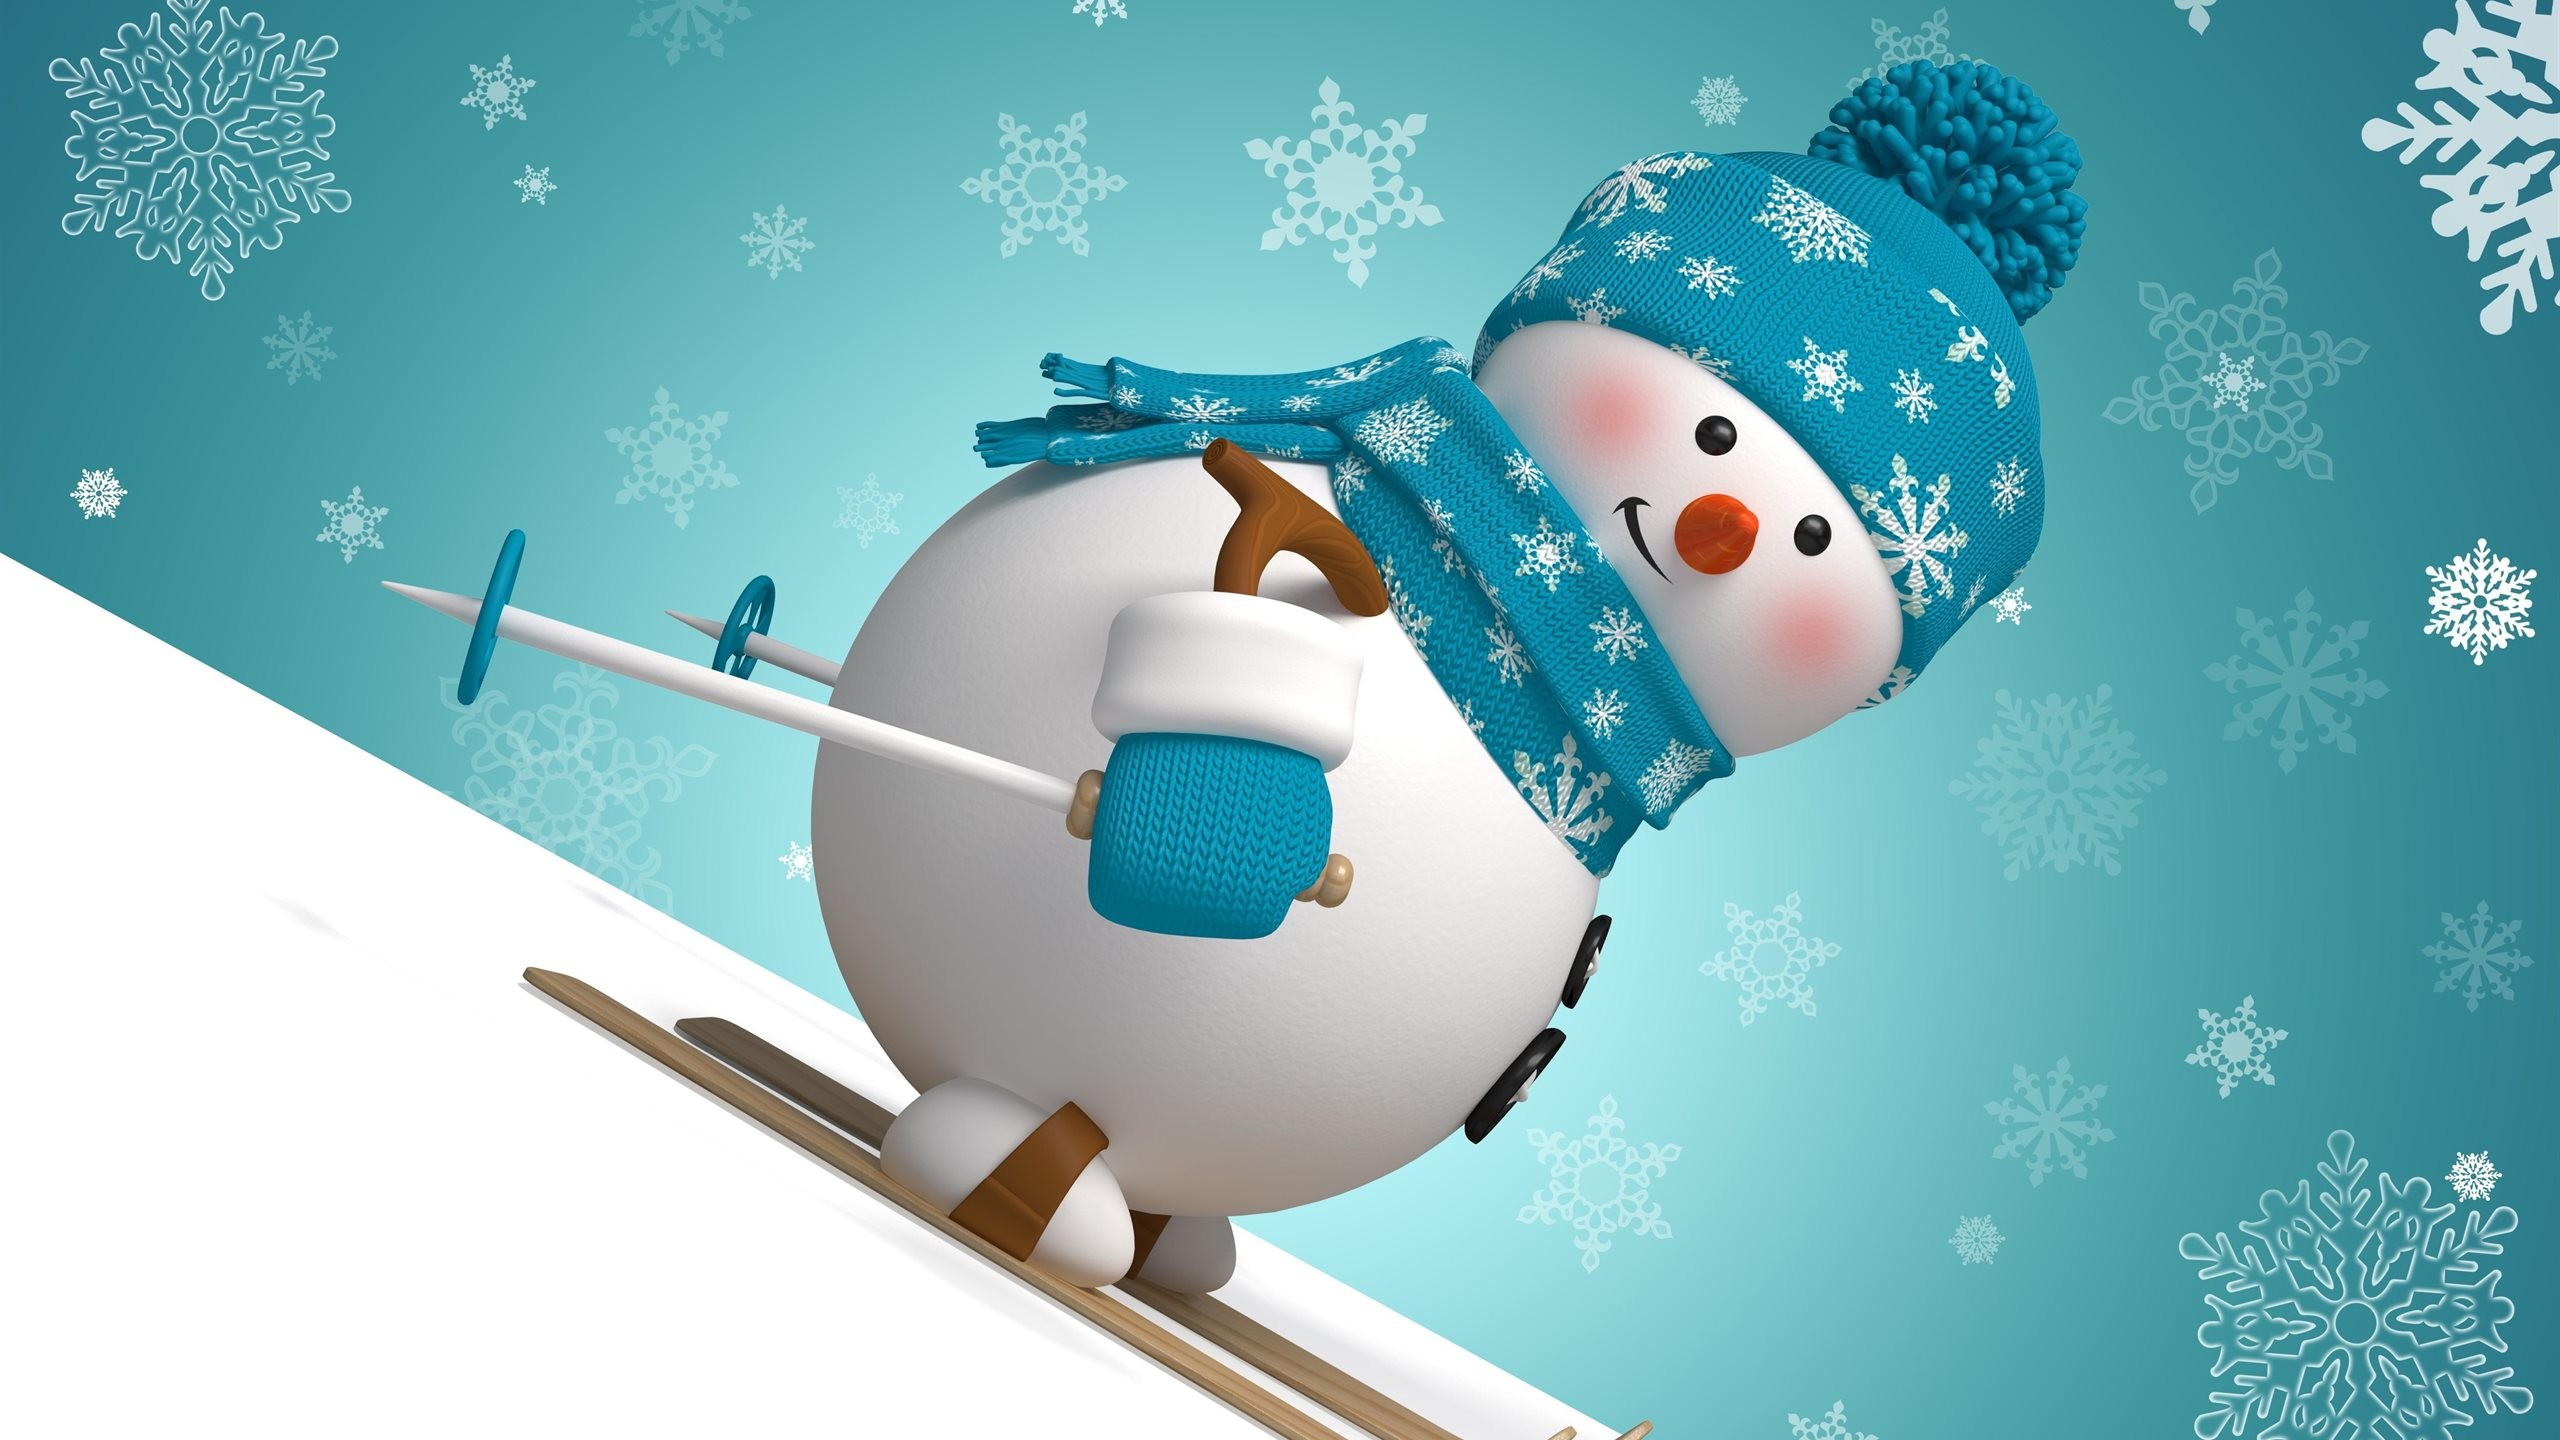 Winter Snowman Wallpaper 61 Images